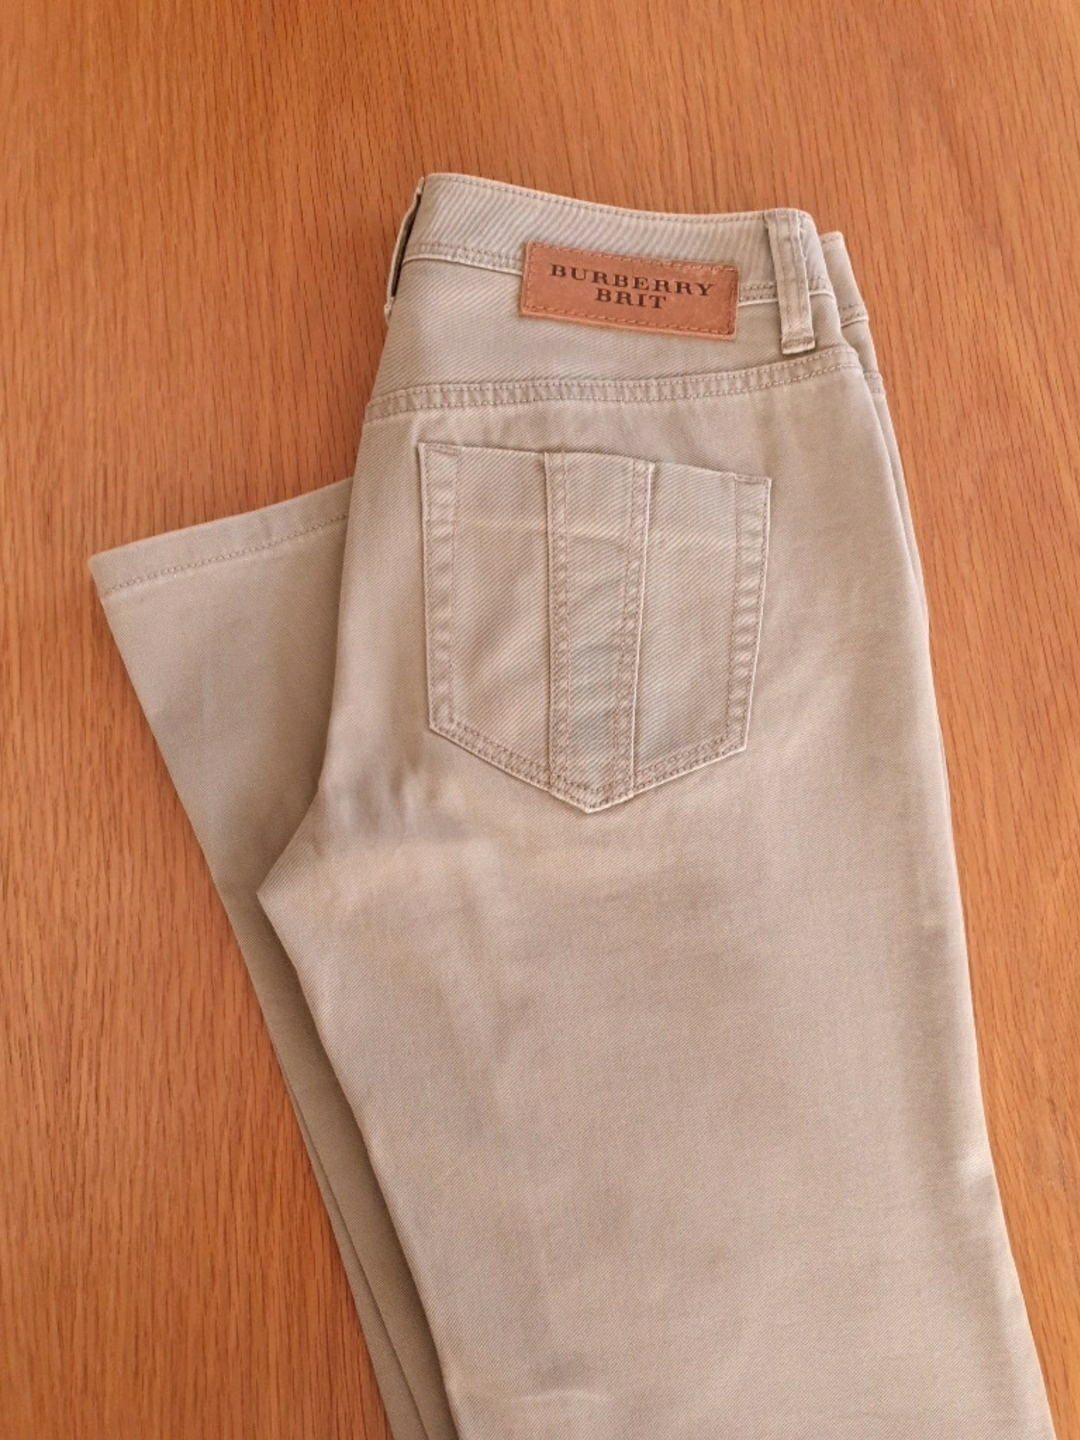 Women's trousers & jeans - BURBERRY photo 2